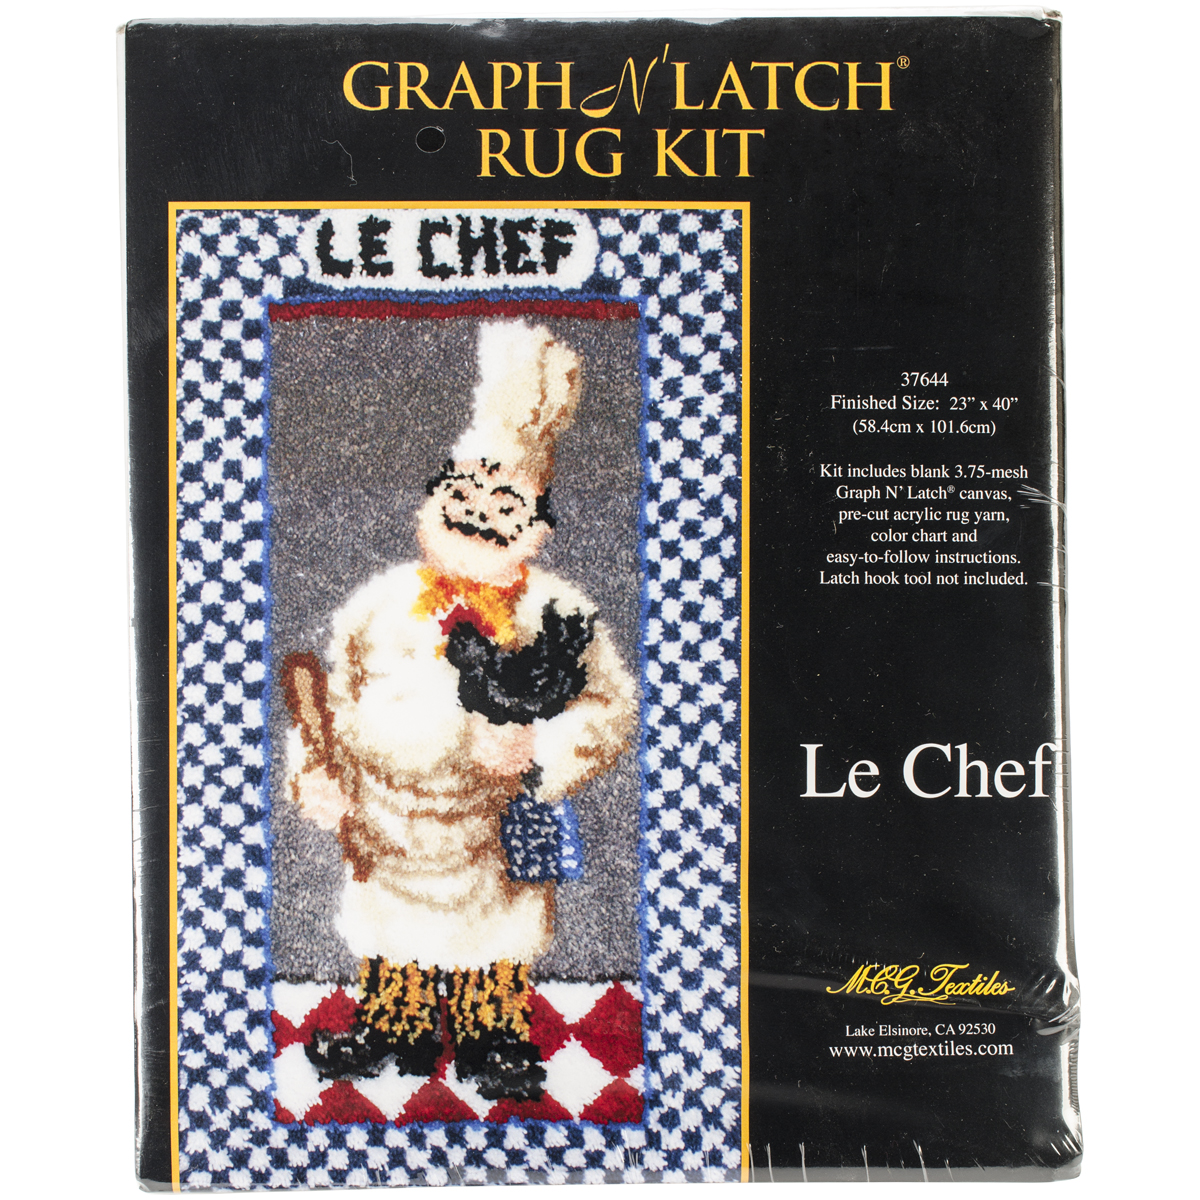 M C G Textiles Latch Hook Kit, 23-Inch by 40-Inch, Le Chef Multi-Colored